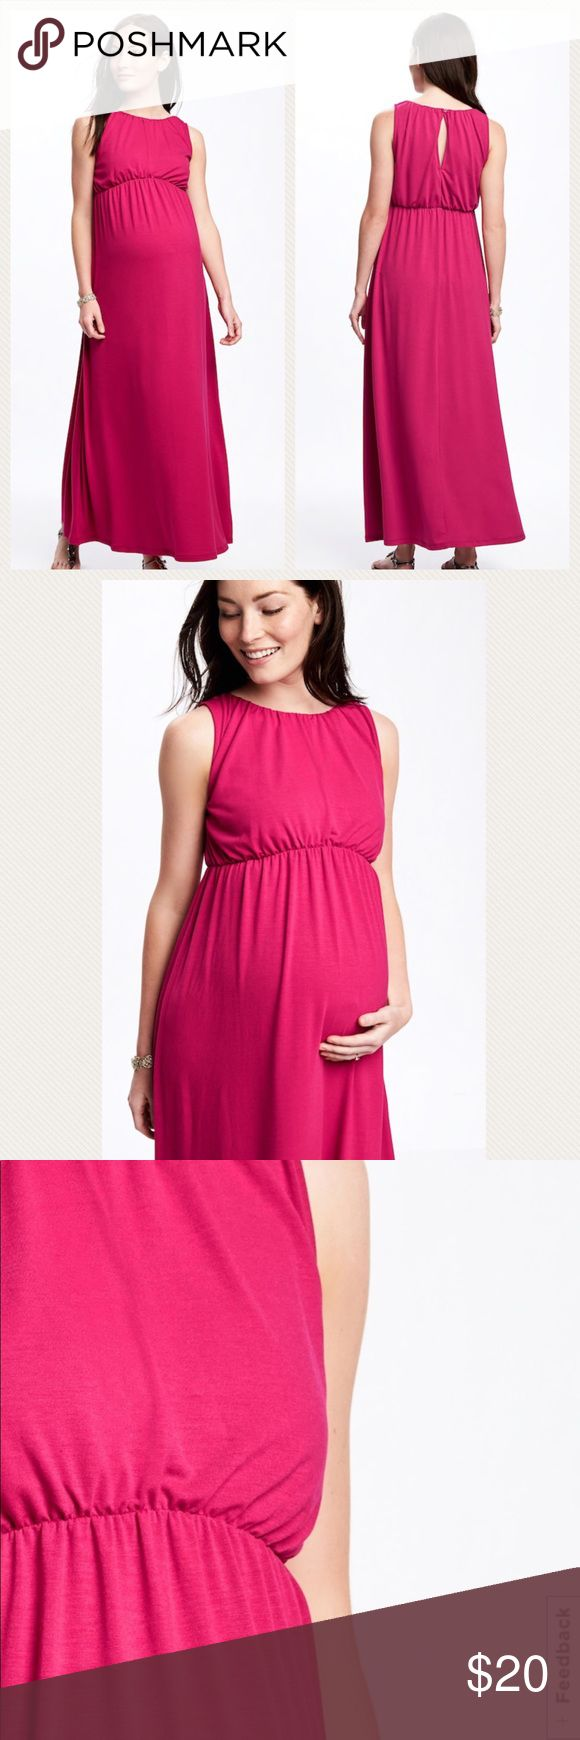 NWOT Old Navy Maternity High-Neck Jersey Maxi -High, rounded neck; sleeveless -Button closure with keyhole cutout at nape -Seamed waist, with soft, shirred detailing -Soft, medium-weight jersey -62% polyester , 34% rayon, 4% spandex -Color: Pink 🛍CREATE  BUNDLE & SAVE 💰15%!! Old Navy Dresses Maxi